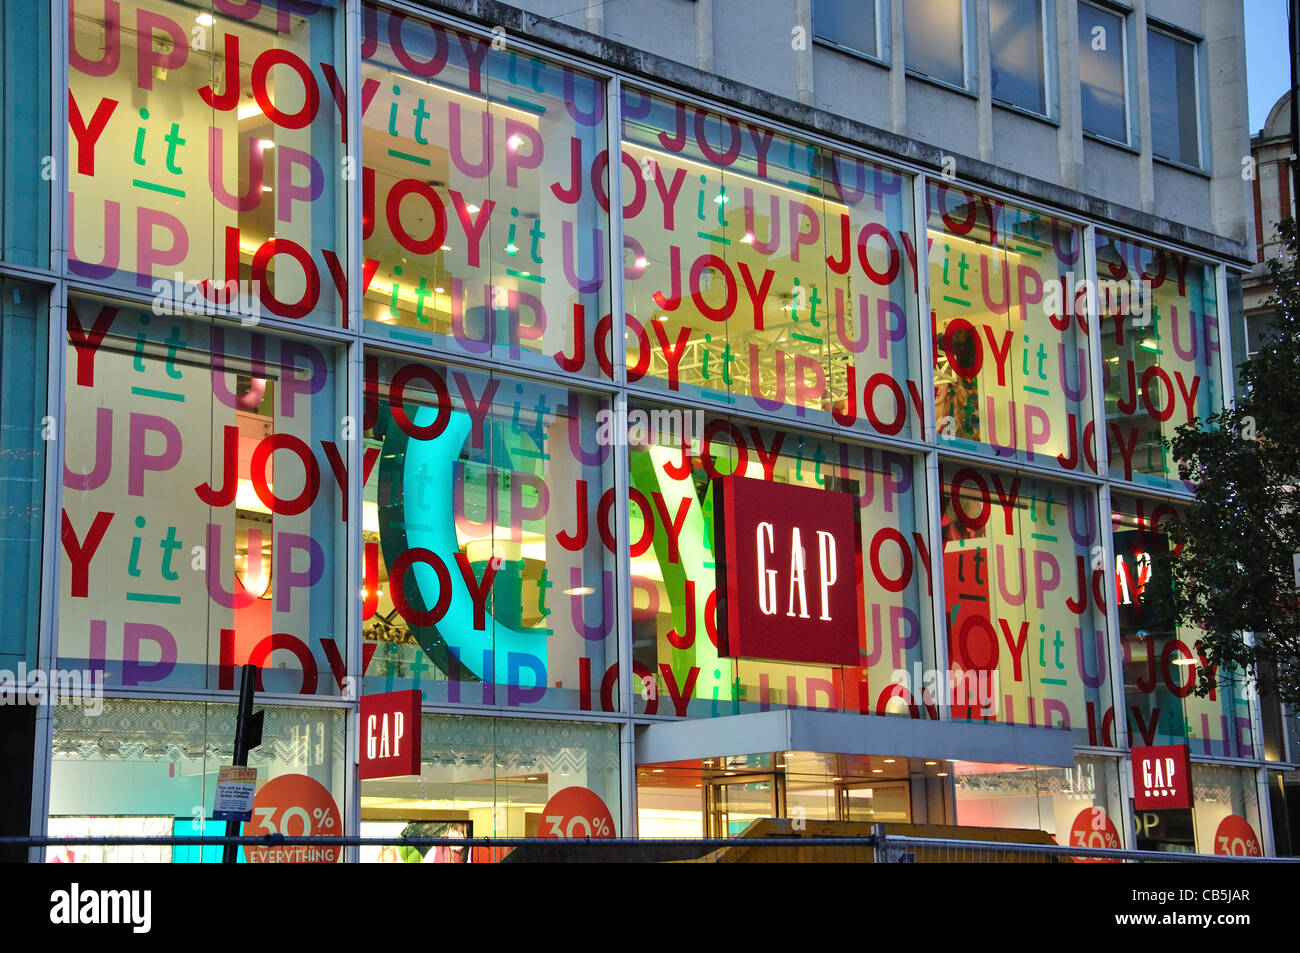 Gap clothing store at Christmas, Oxford Street, City of Westminster, London, Greater London, England, United Kingdom - Stock Image